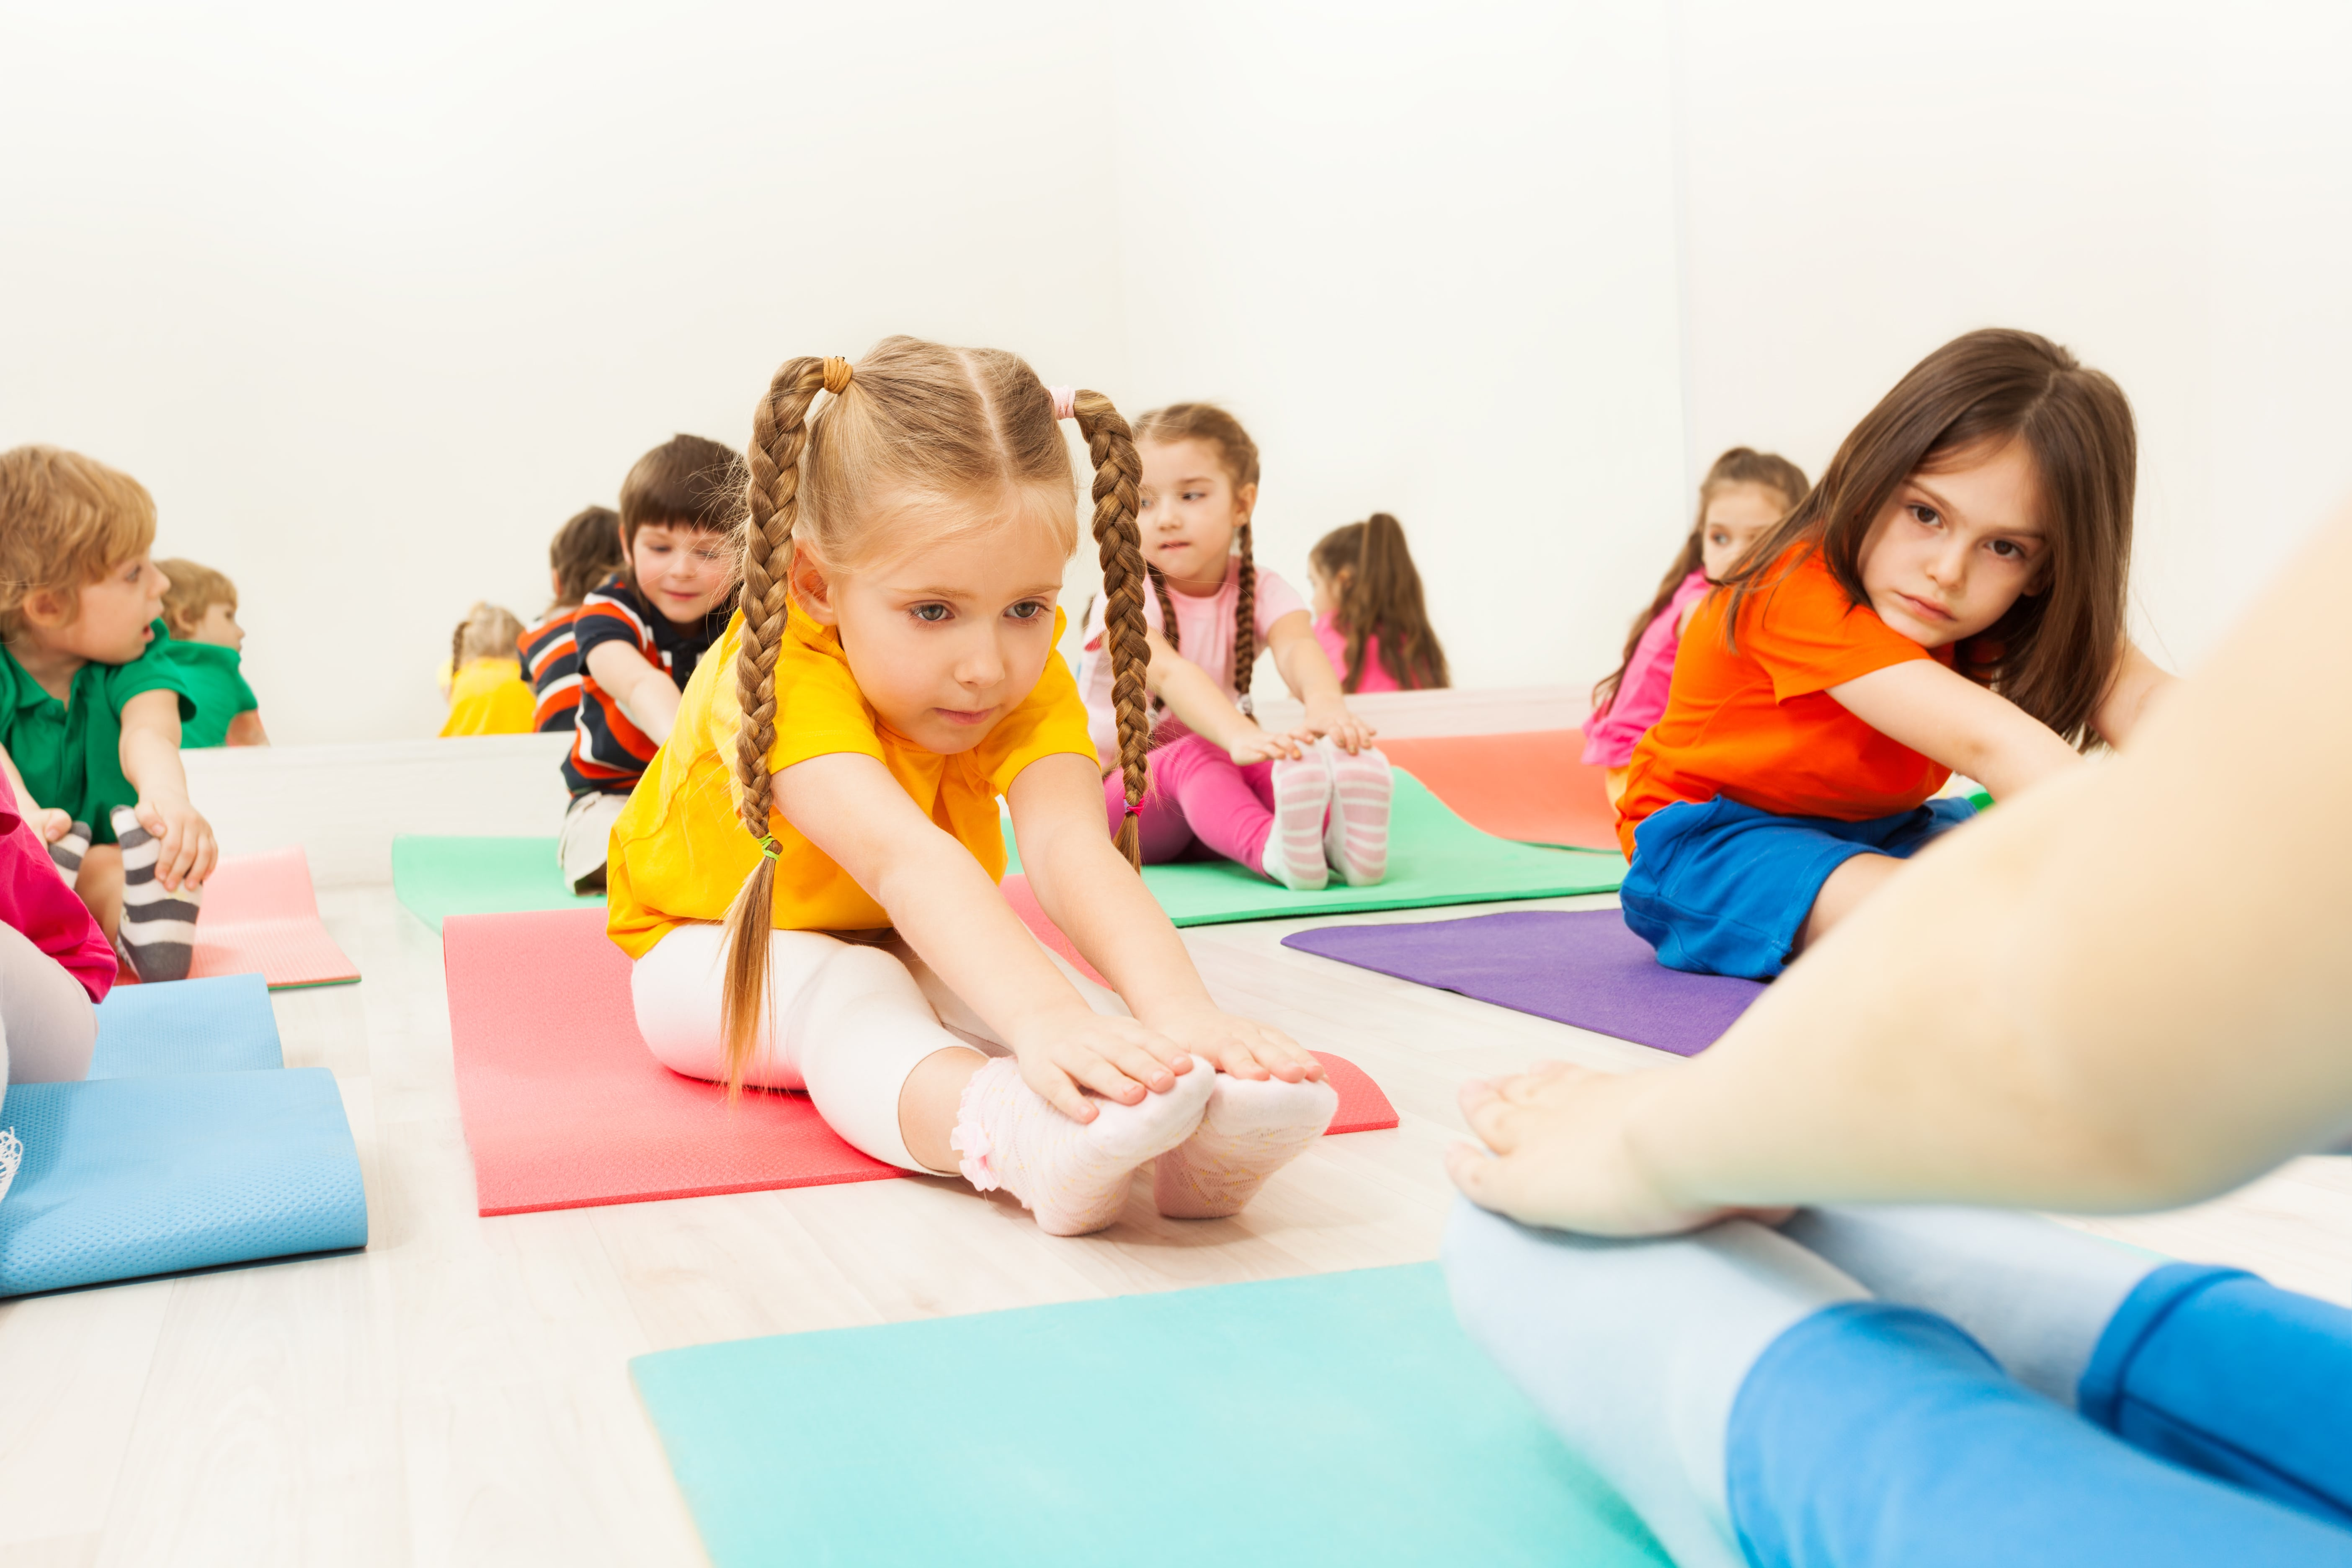 Children on the gym floor doing stretches